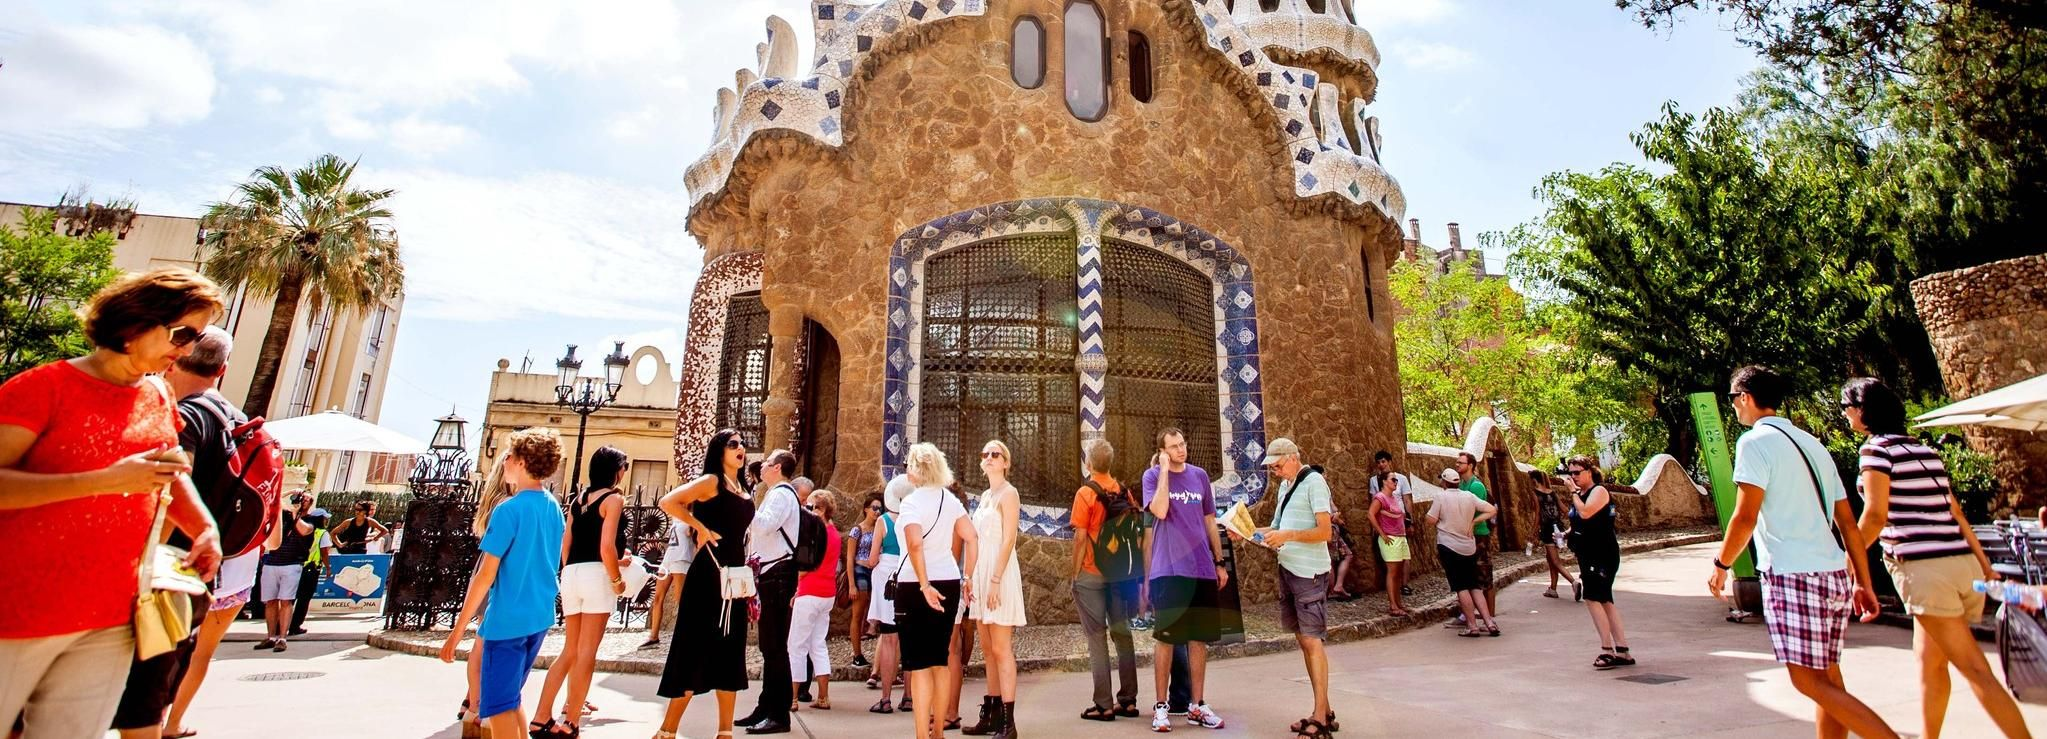 Private Barcelona Tour with Skip-the-Line Ticket